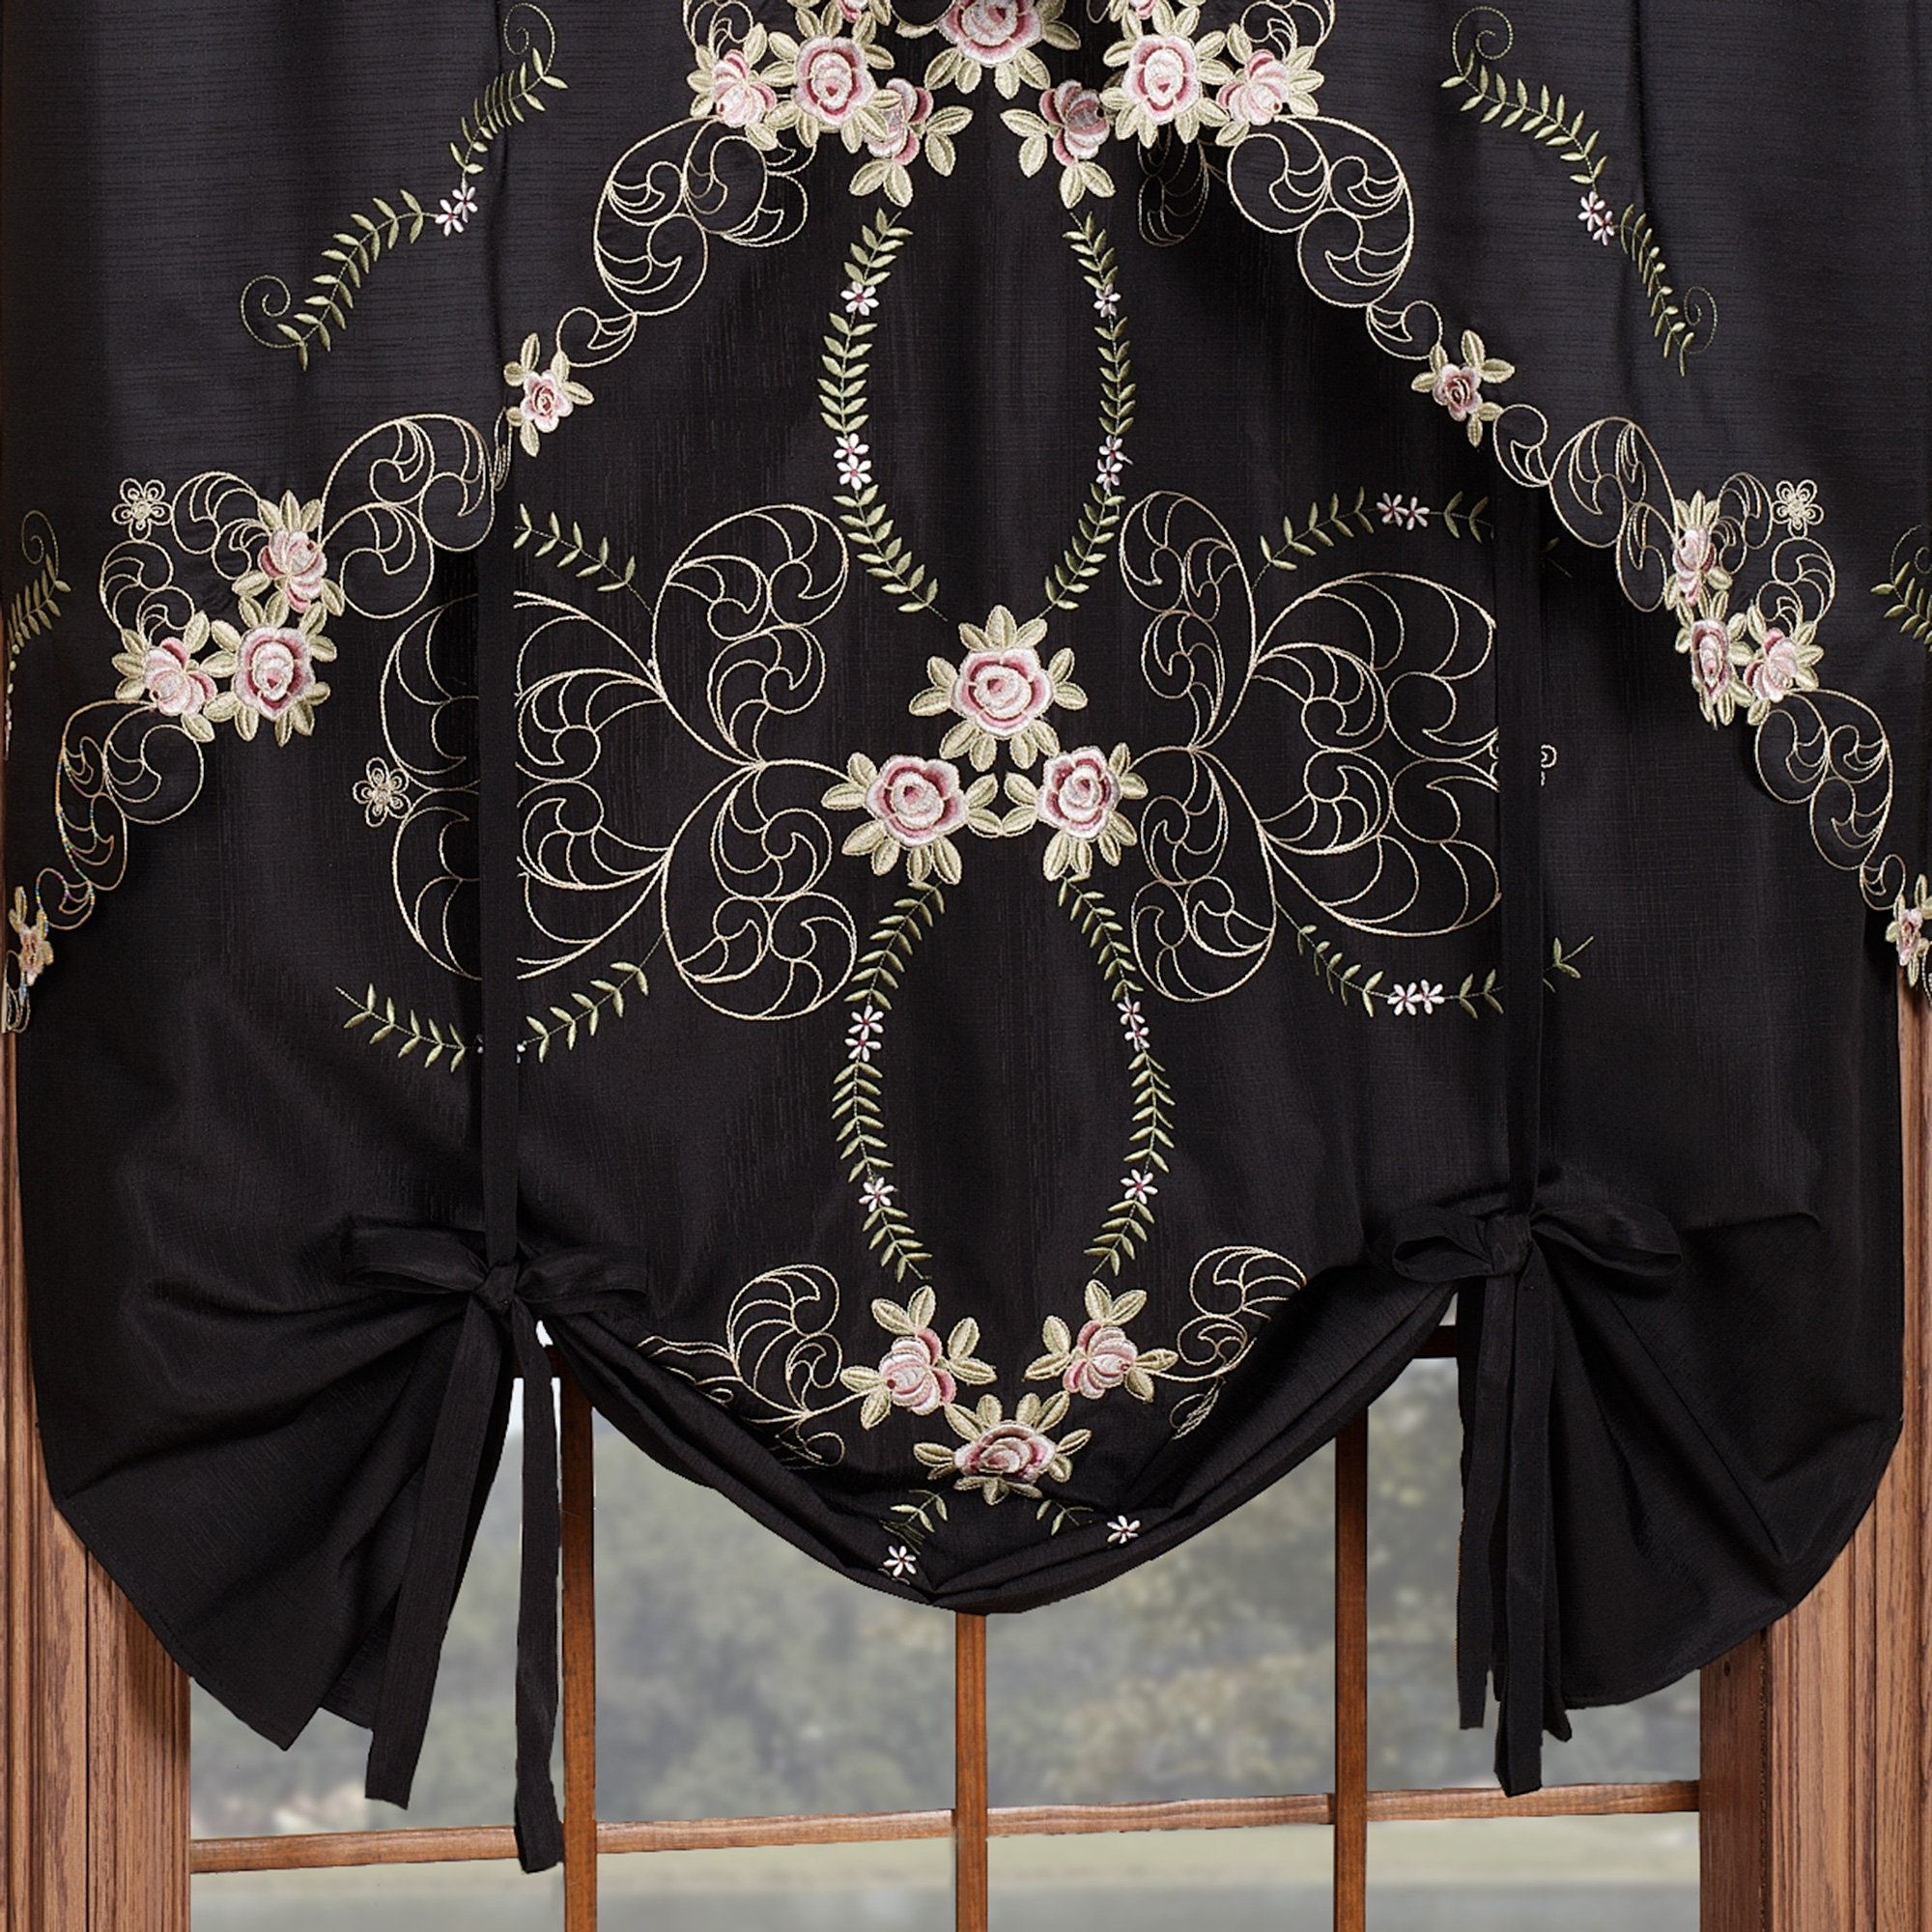 Annabella Rose Floral Black Tie Up Window Shade